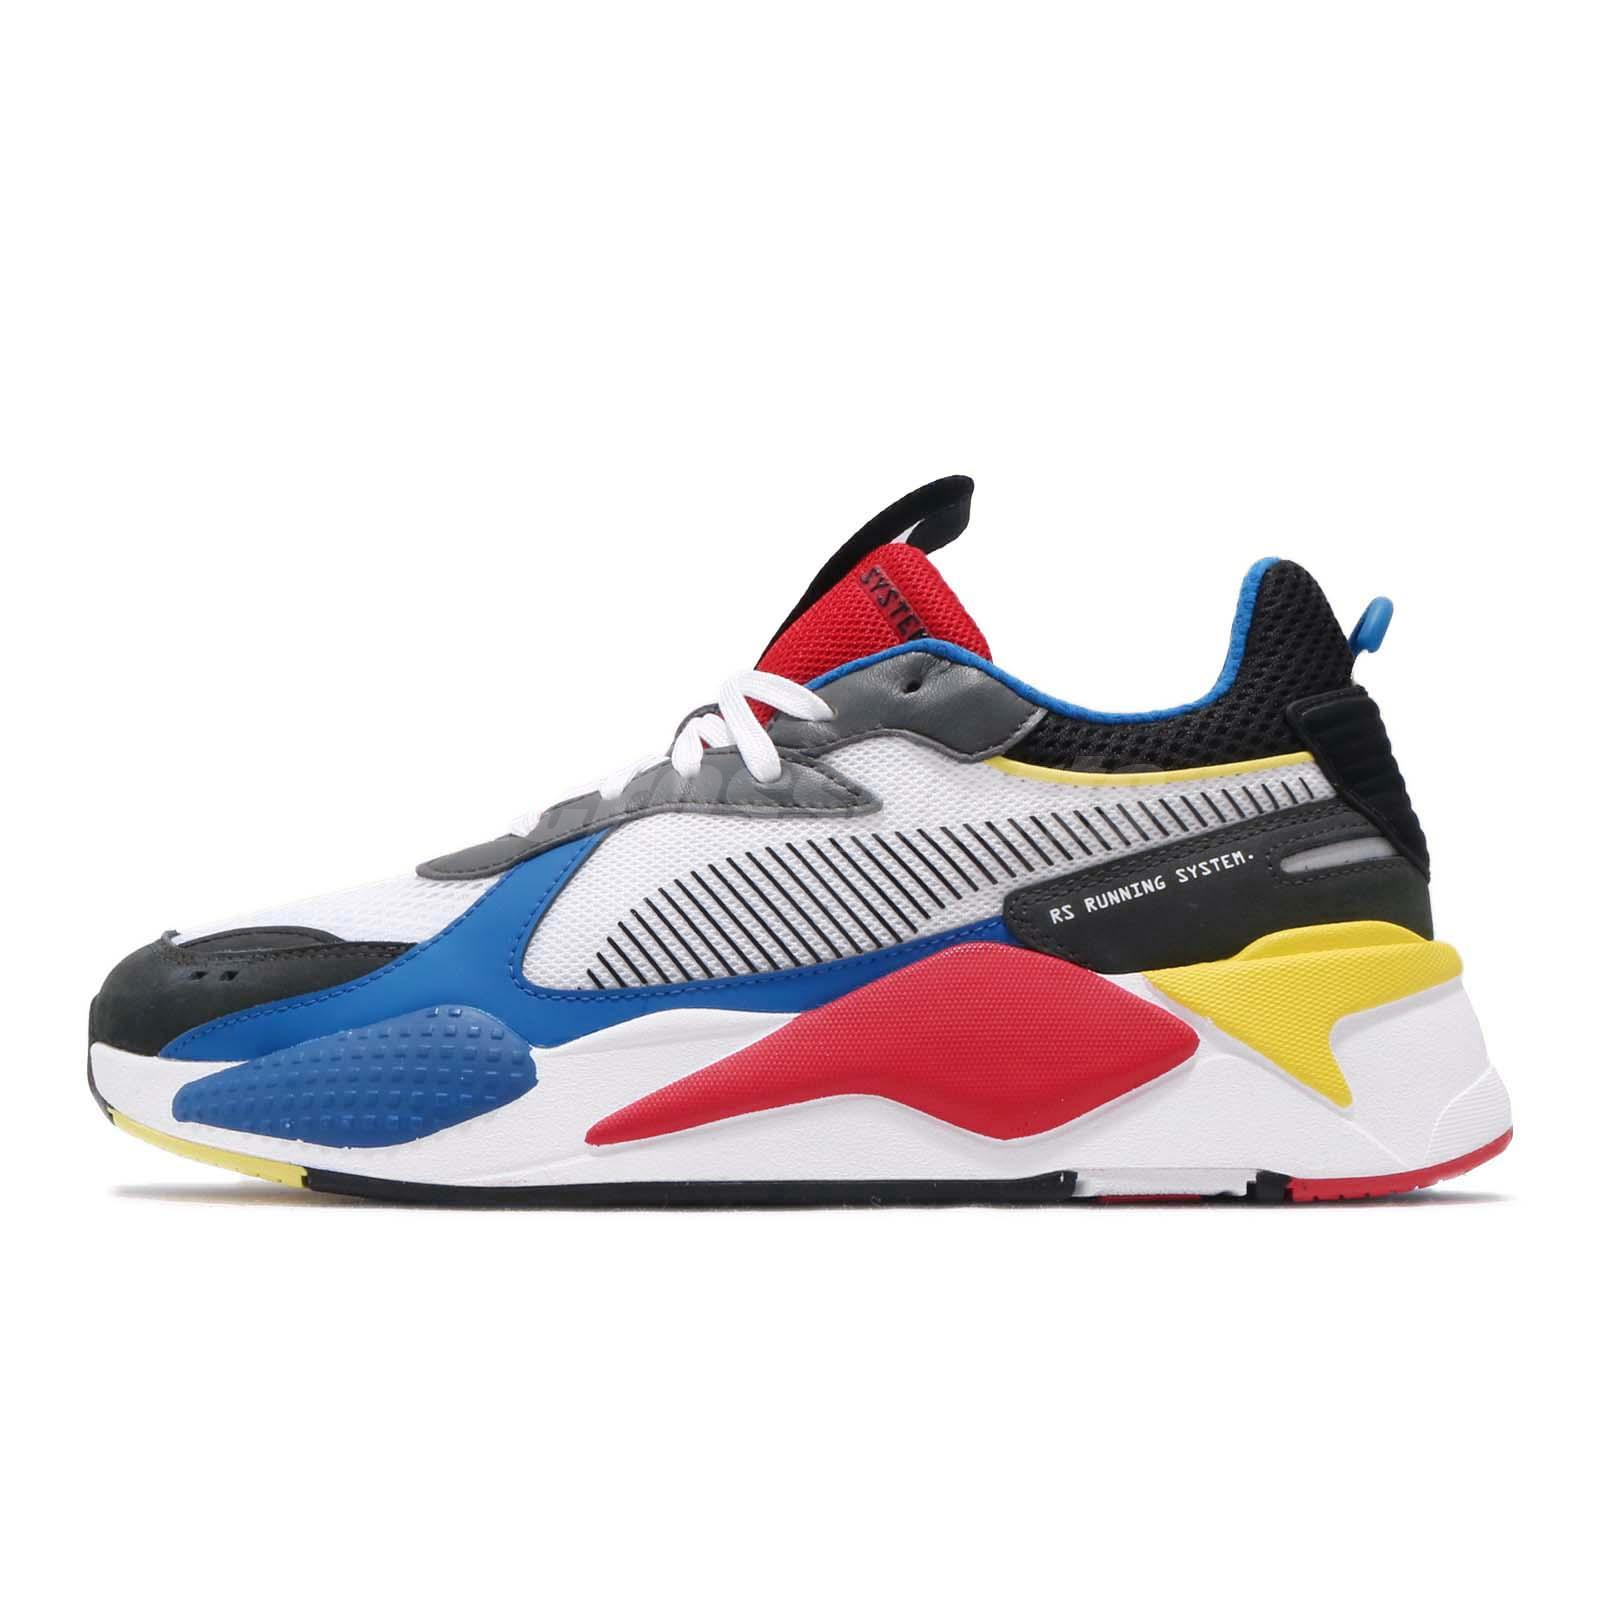 Details about Puma RS X Toys Running System White Black Blue Red Yellow Men Shoes 369449 02